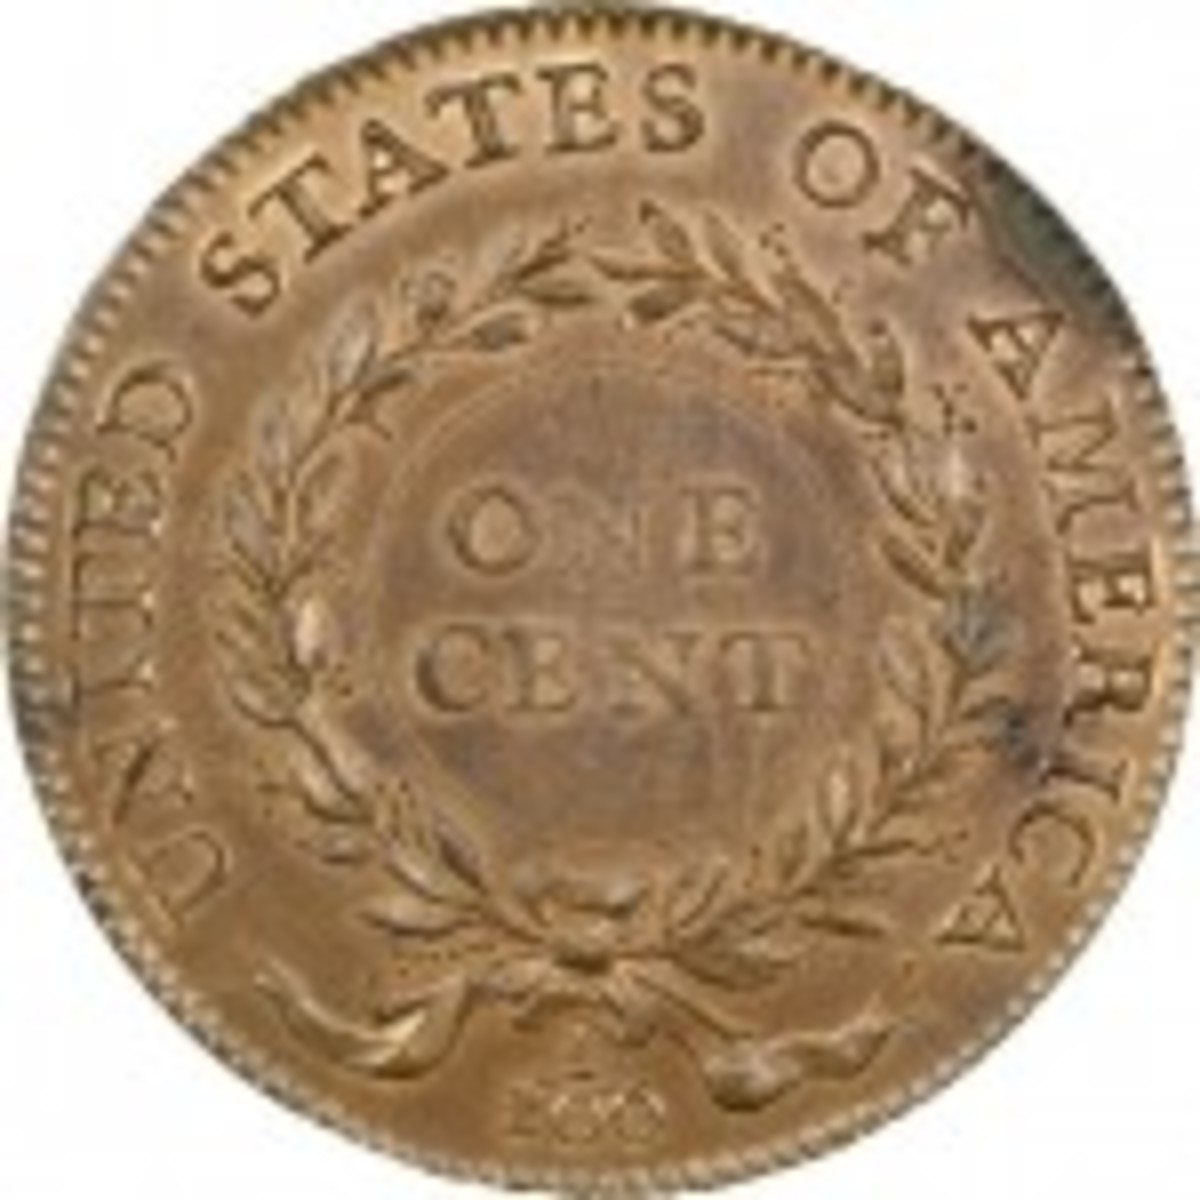 Colonial coin2